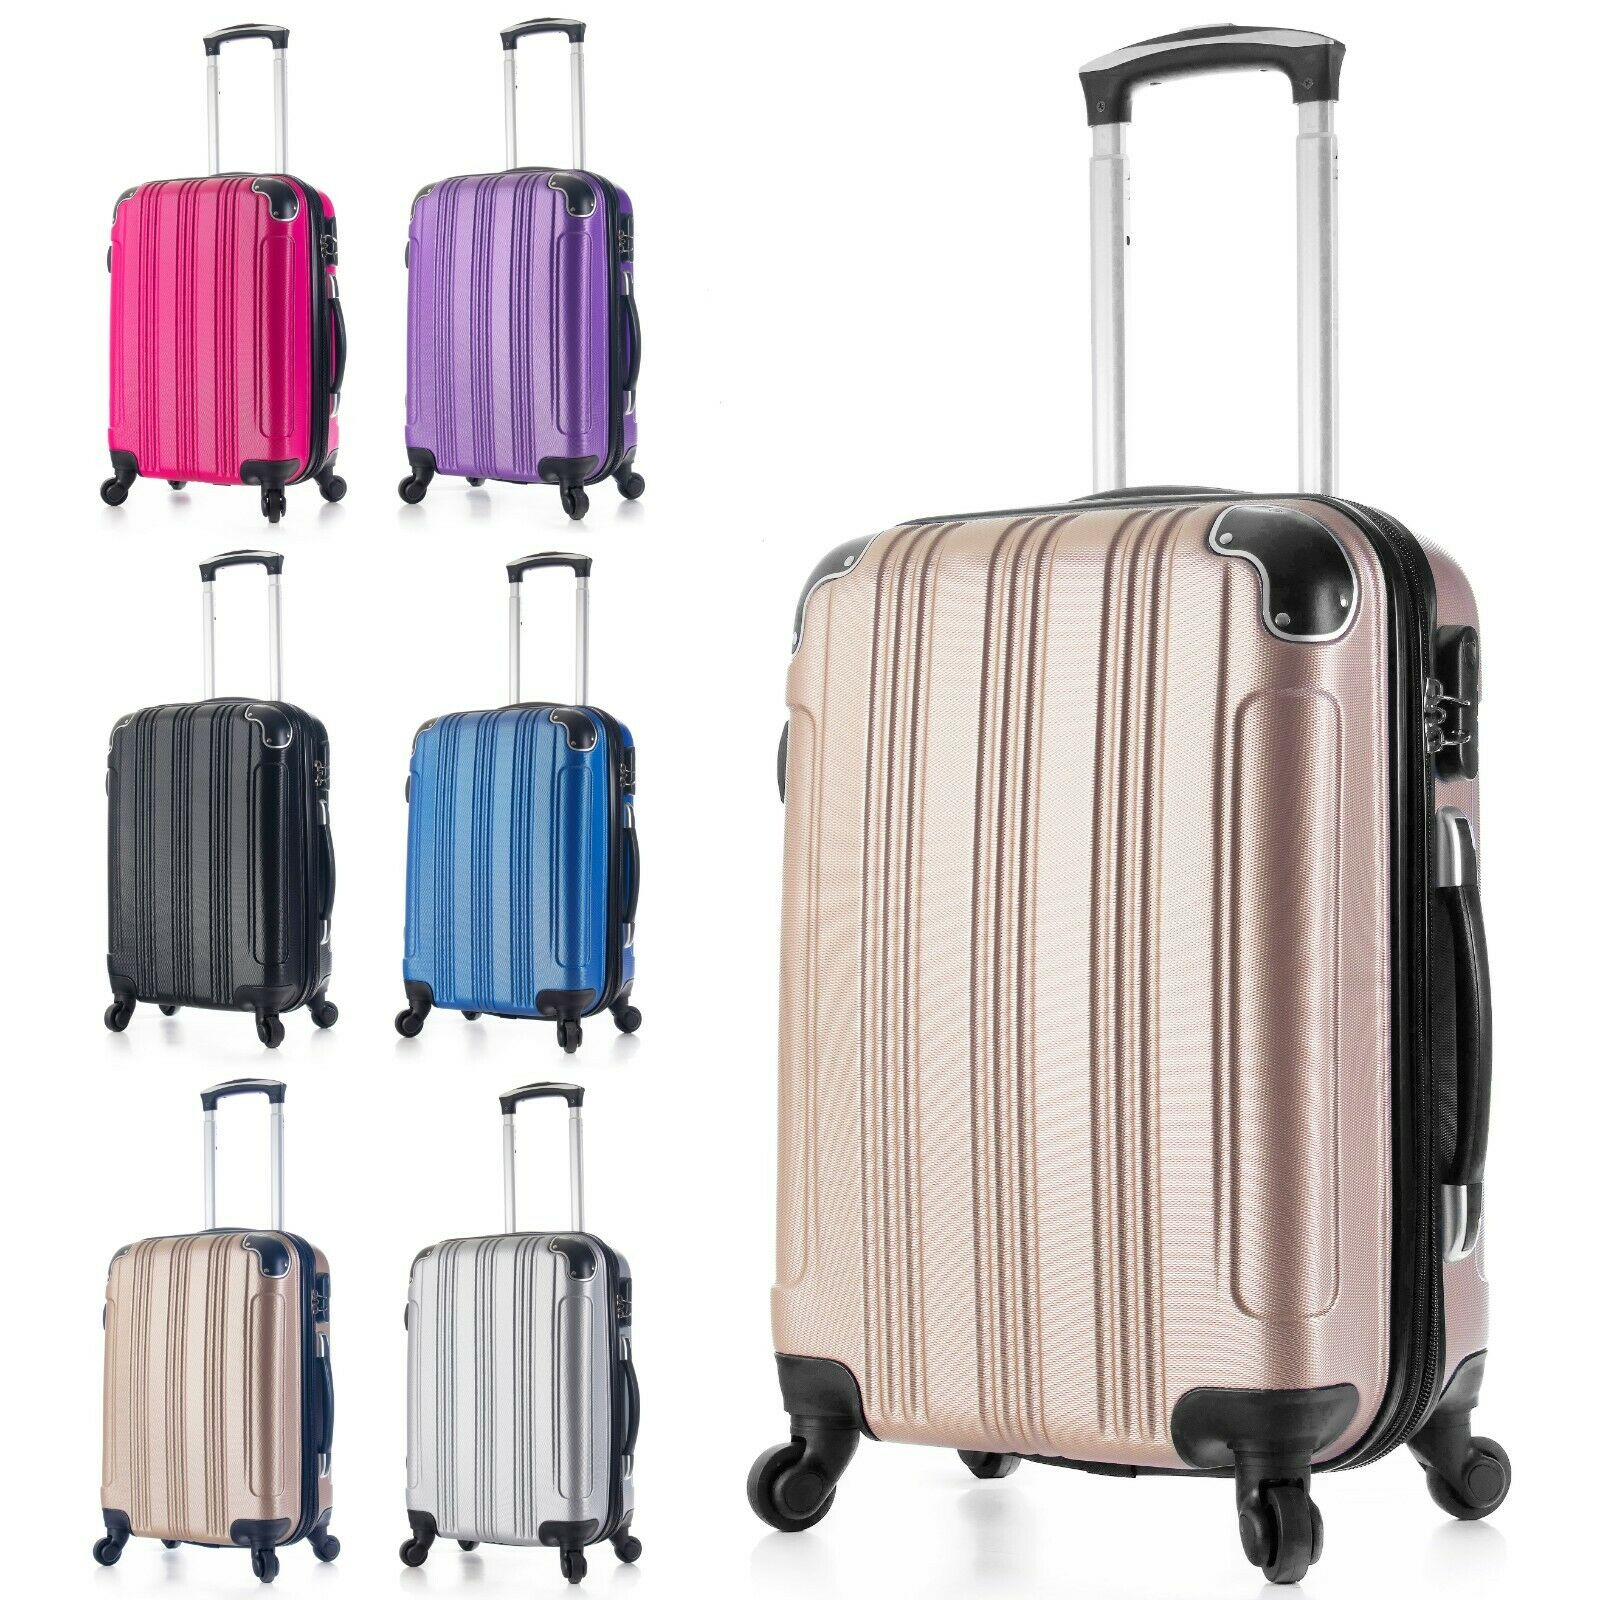 22 carry on luggage travel luggage lightweight